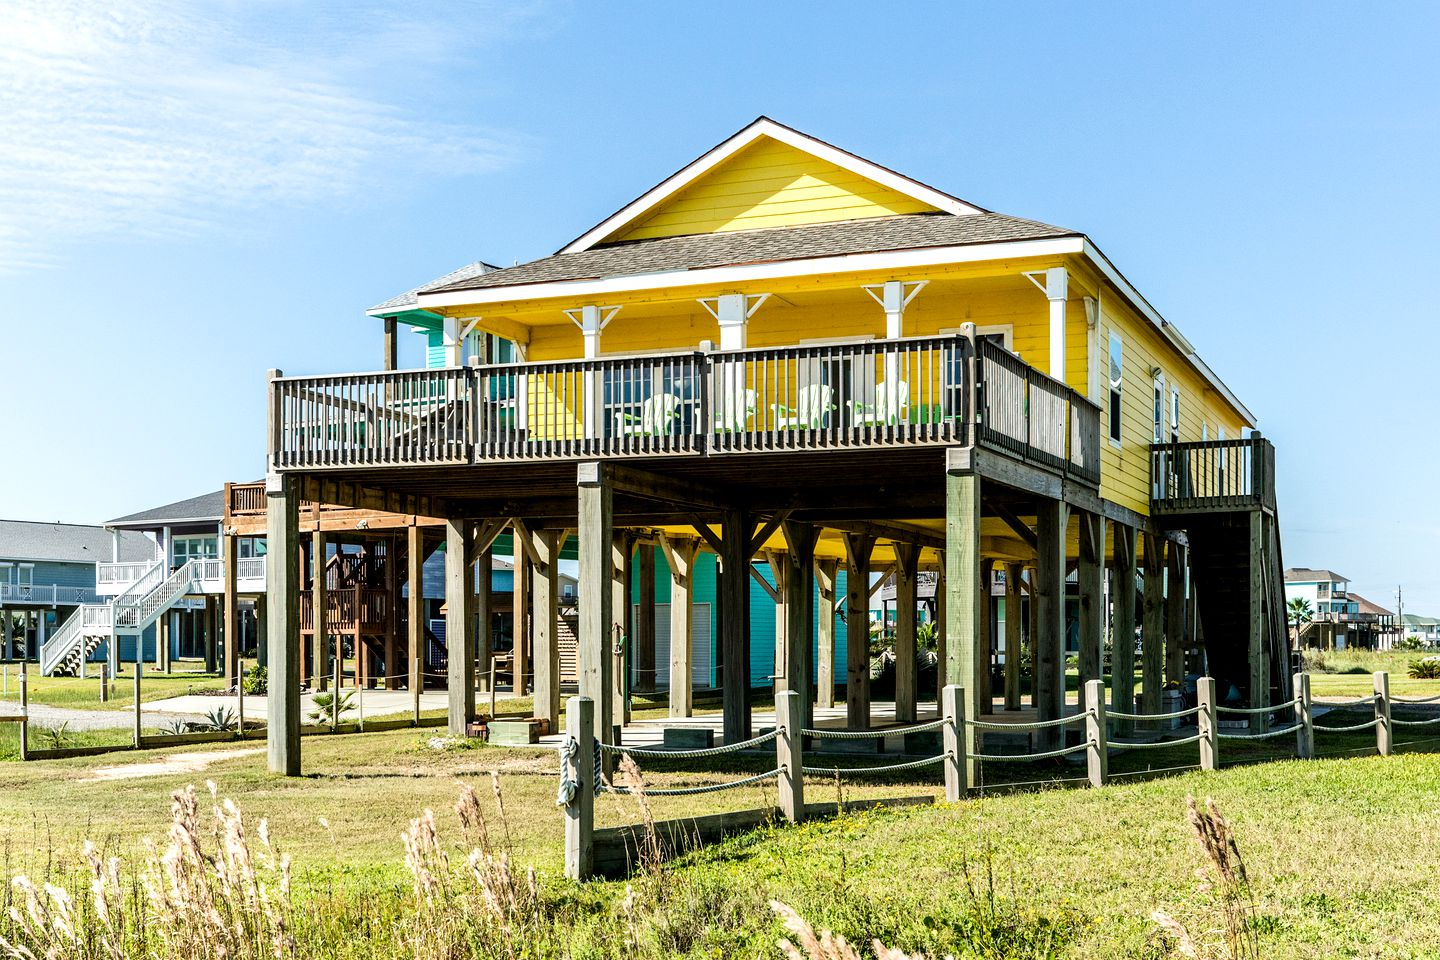 Cabins (Crystal Beach, Texas, United States)